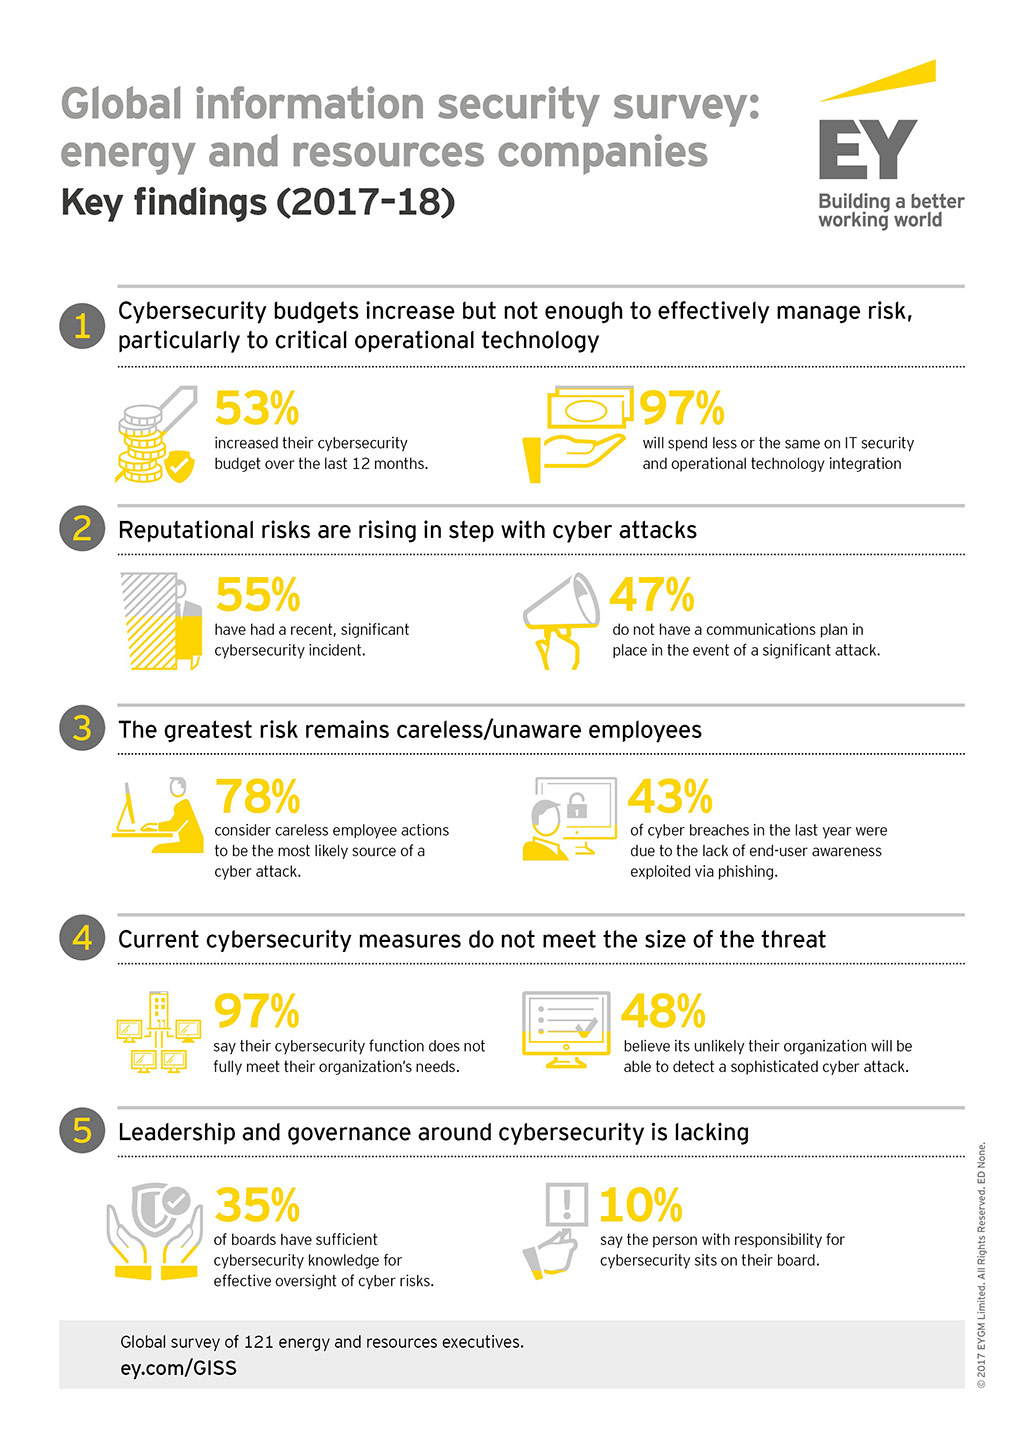 EY - Cybersecurity - key findings for energy and resources companies